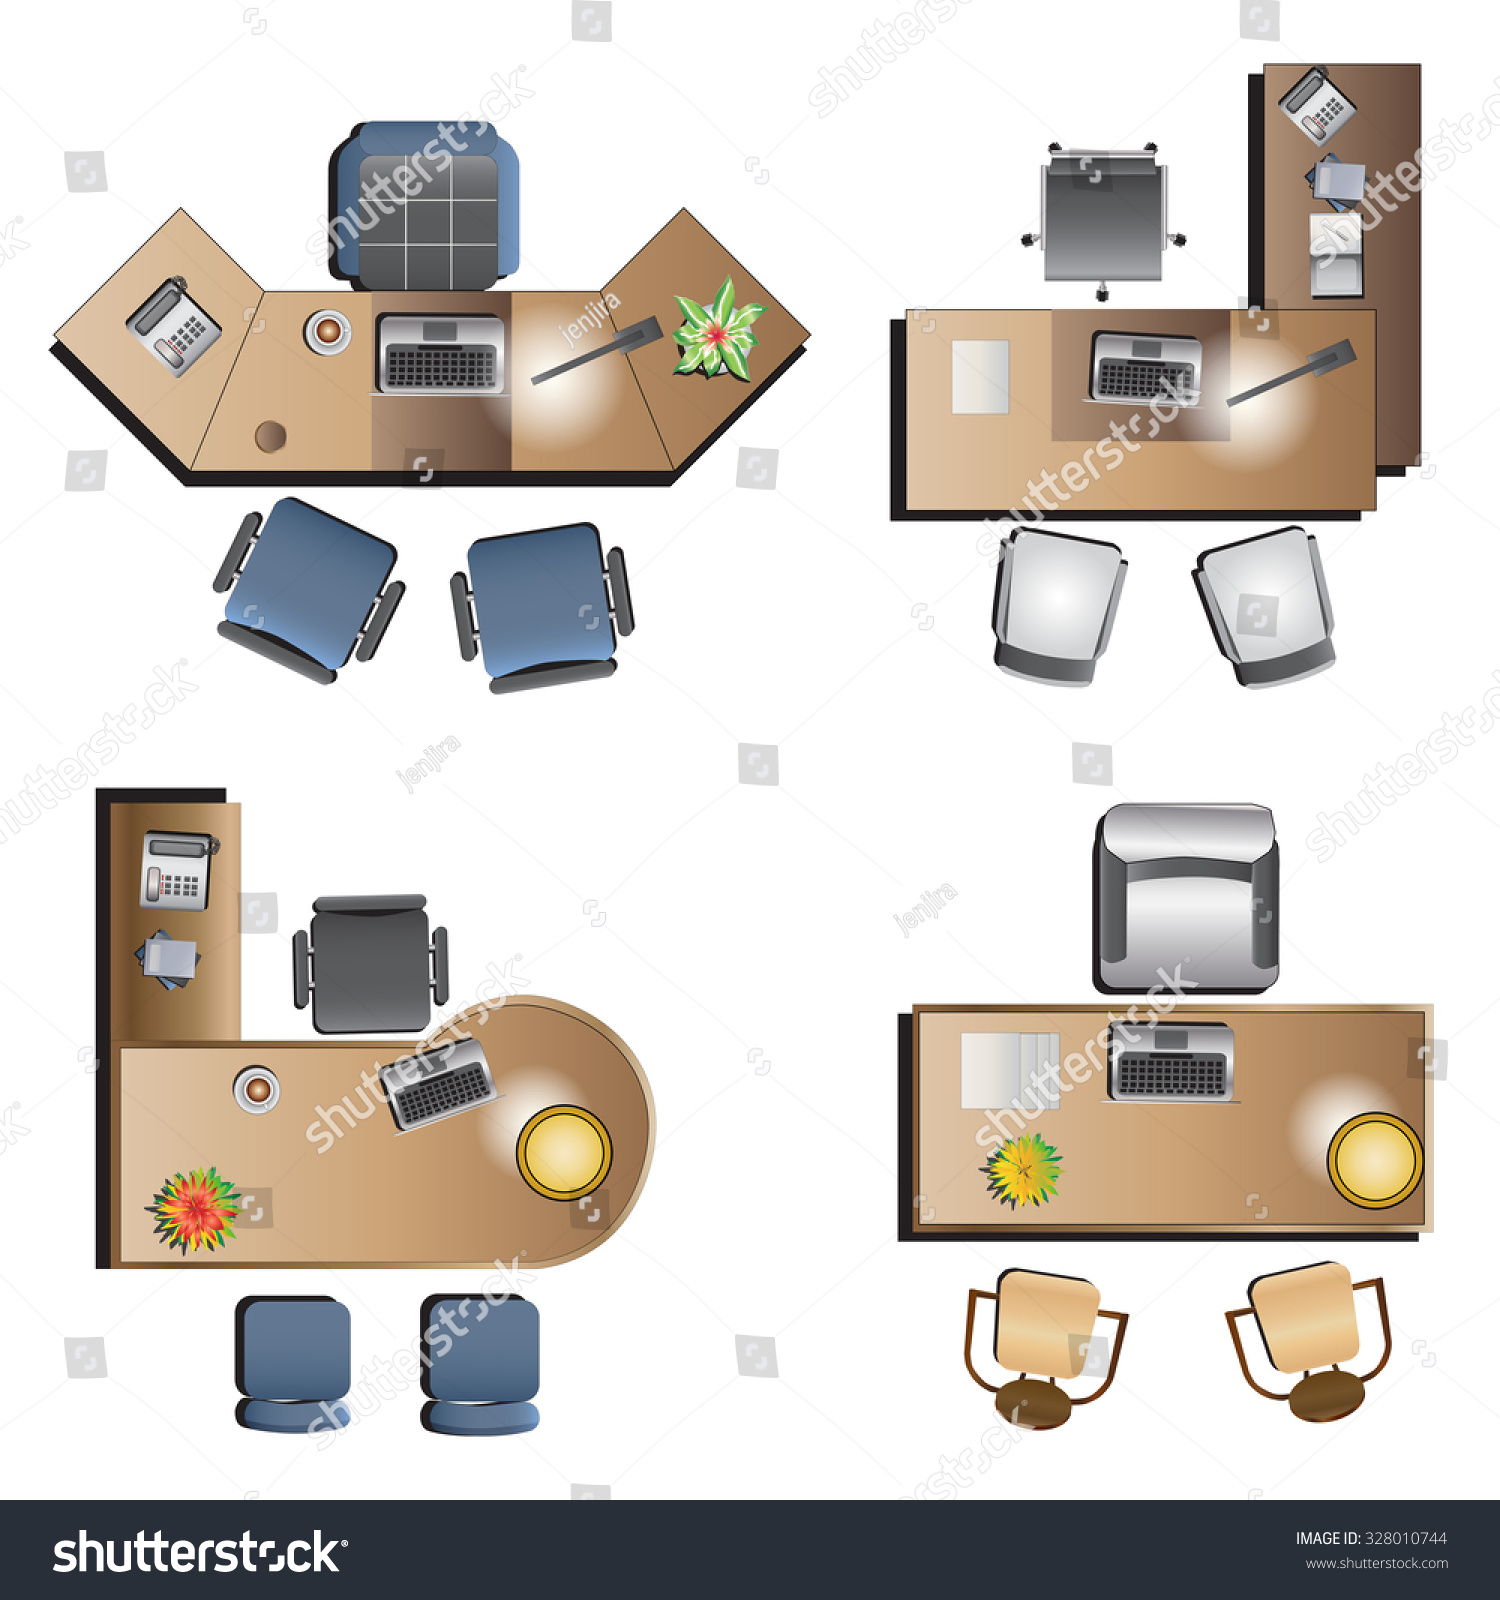 Furniture top view images - Office Furniture Top View For Interior Vector Illustration